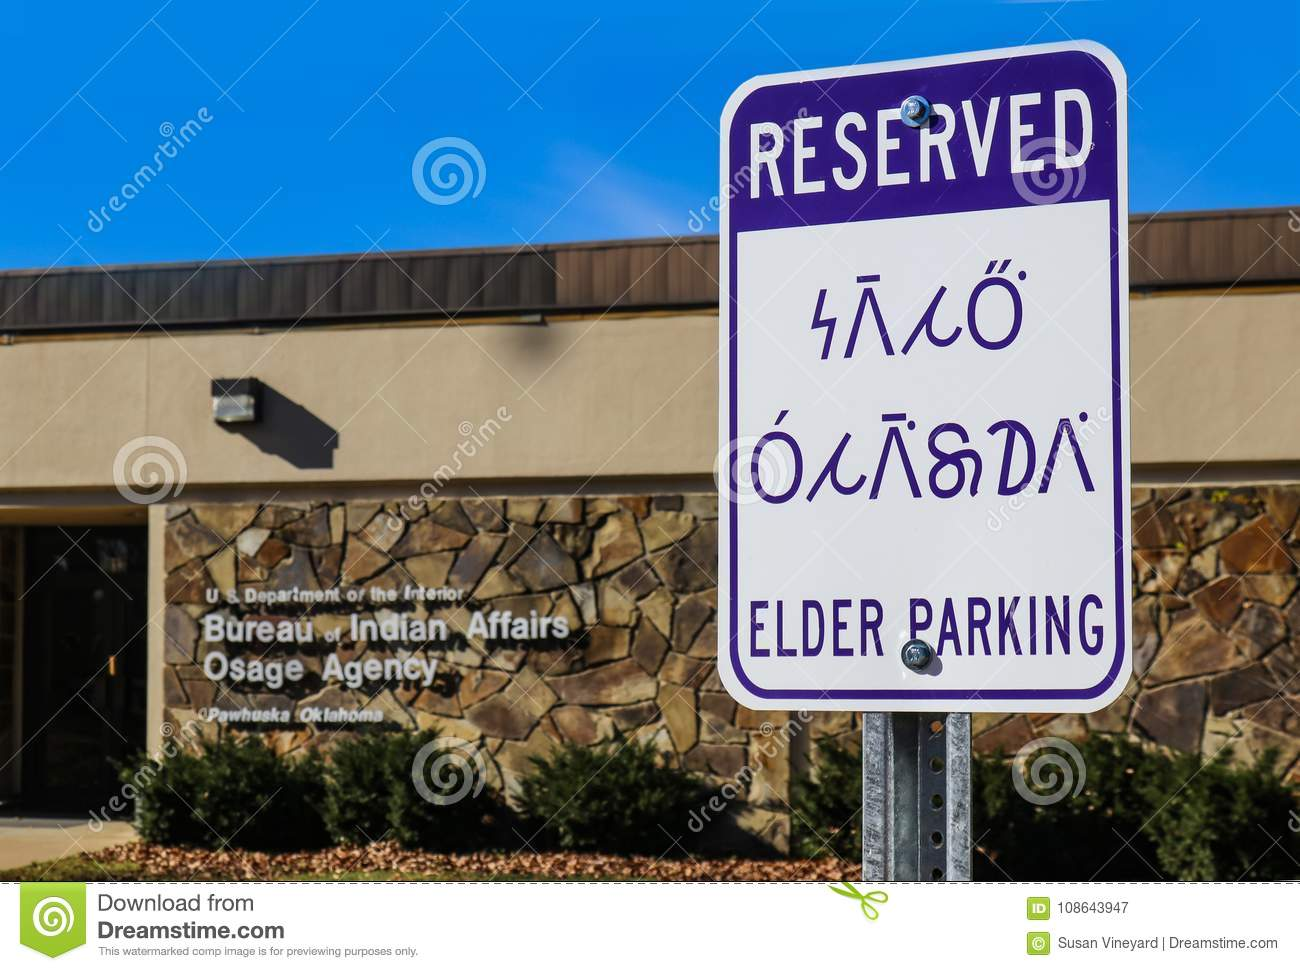 Reserved elder parking sign in english and the osage indian